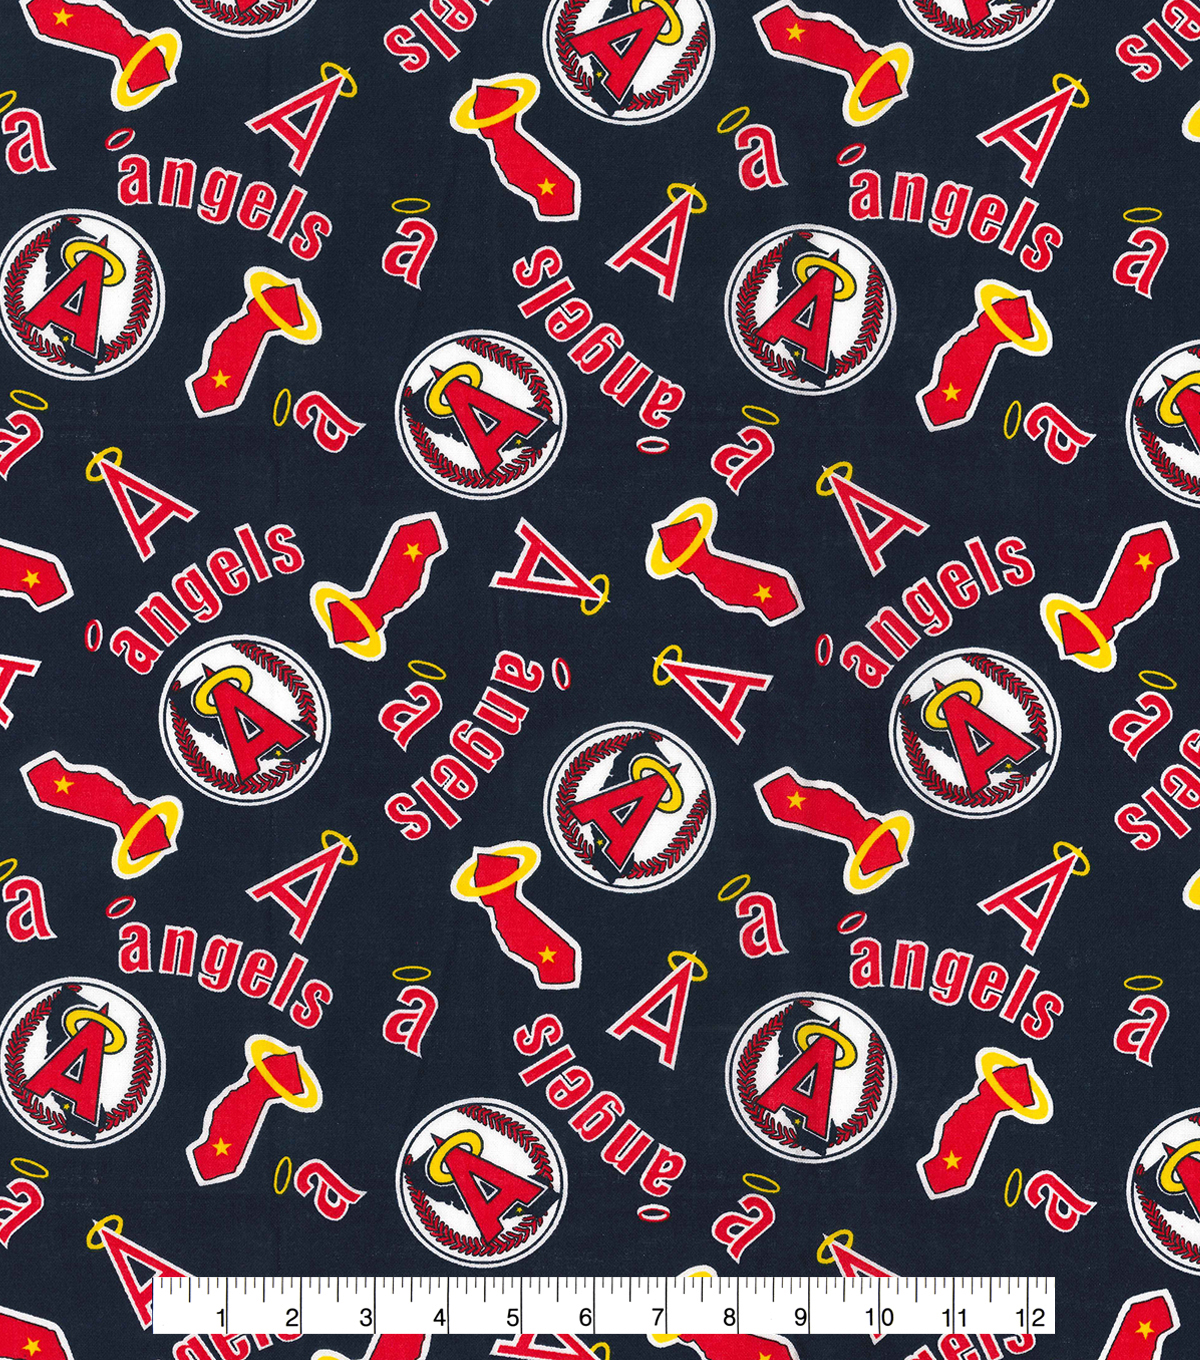 Cooperstown Los Angeles Angels Cotton Fabric